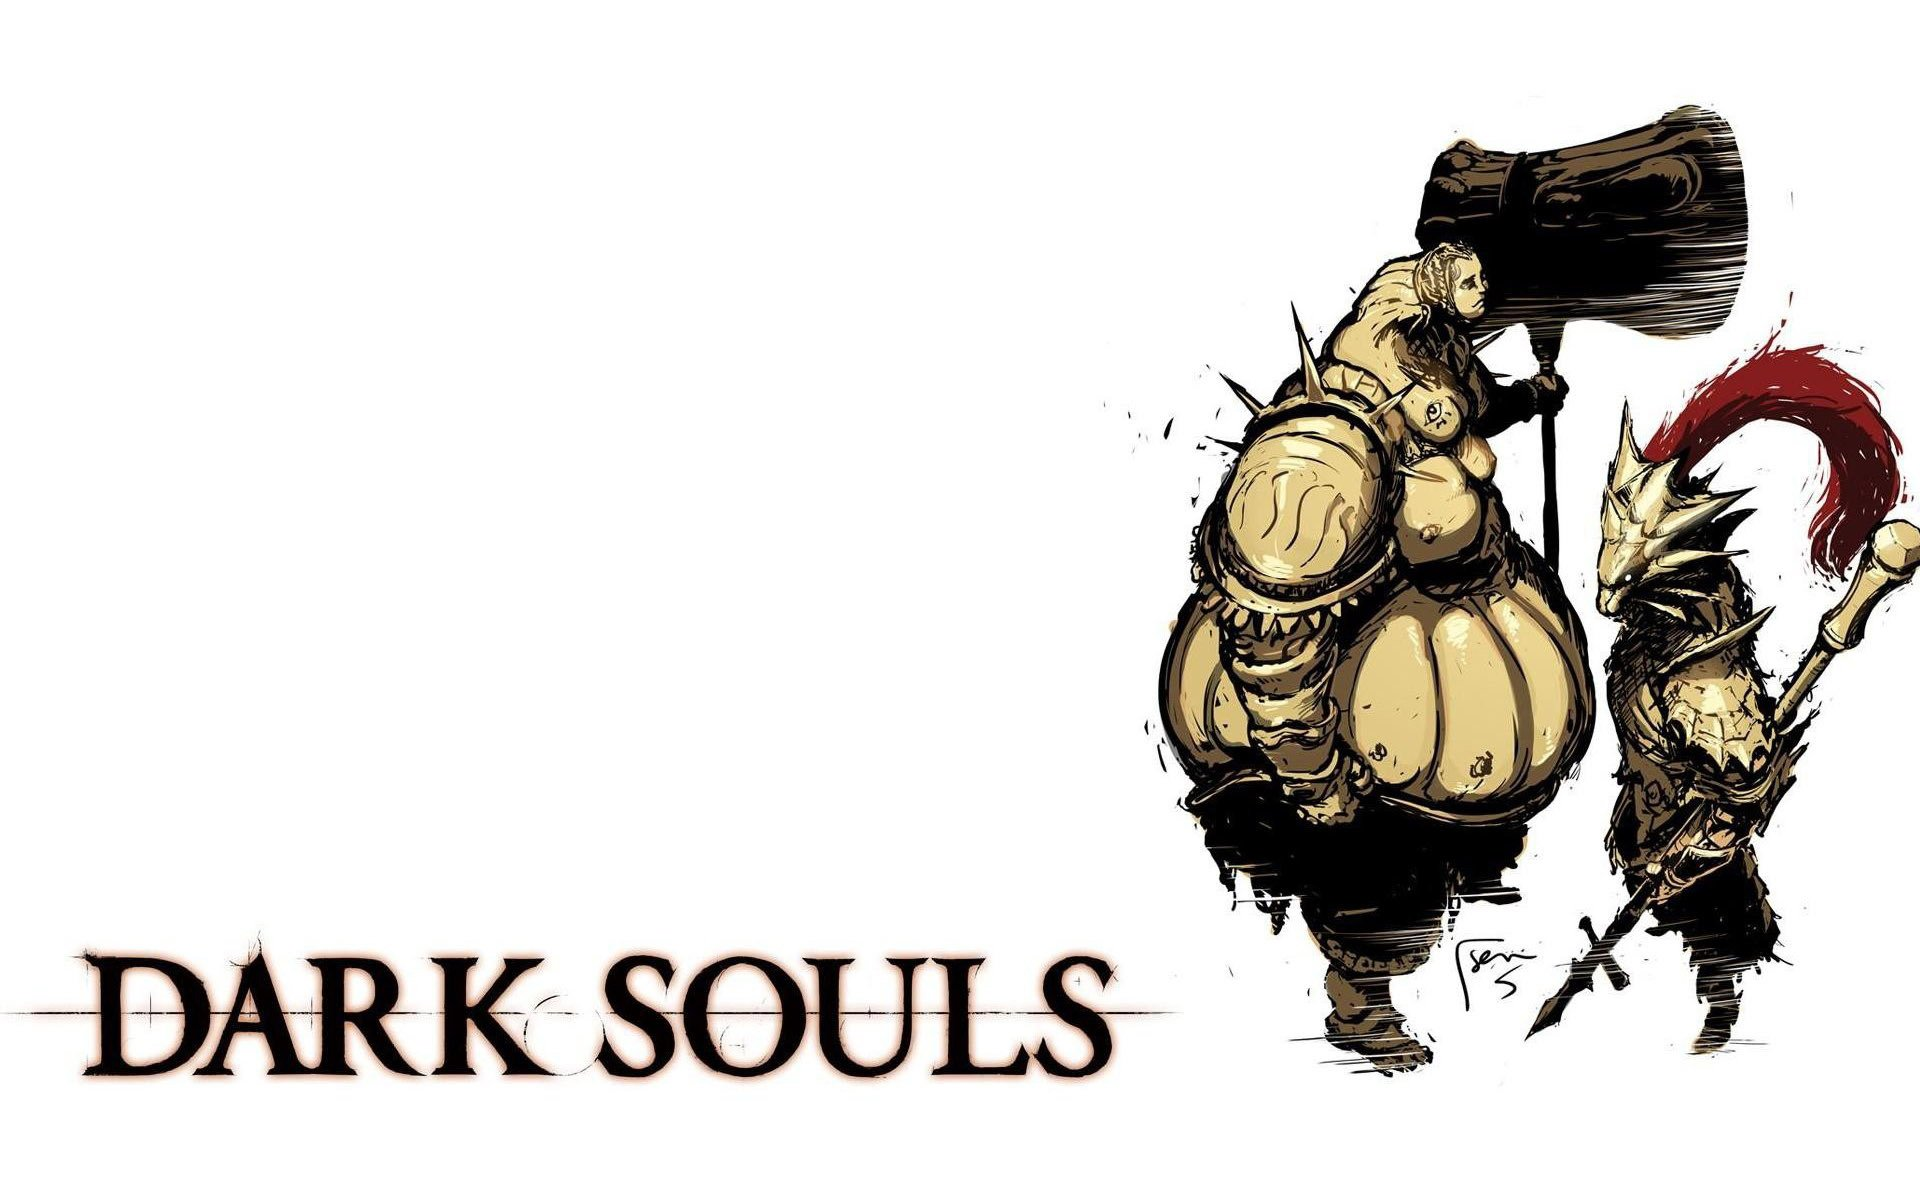 Dark Souls Ornstein And Smough Wallpapers Images Is Cool Wallpapers